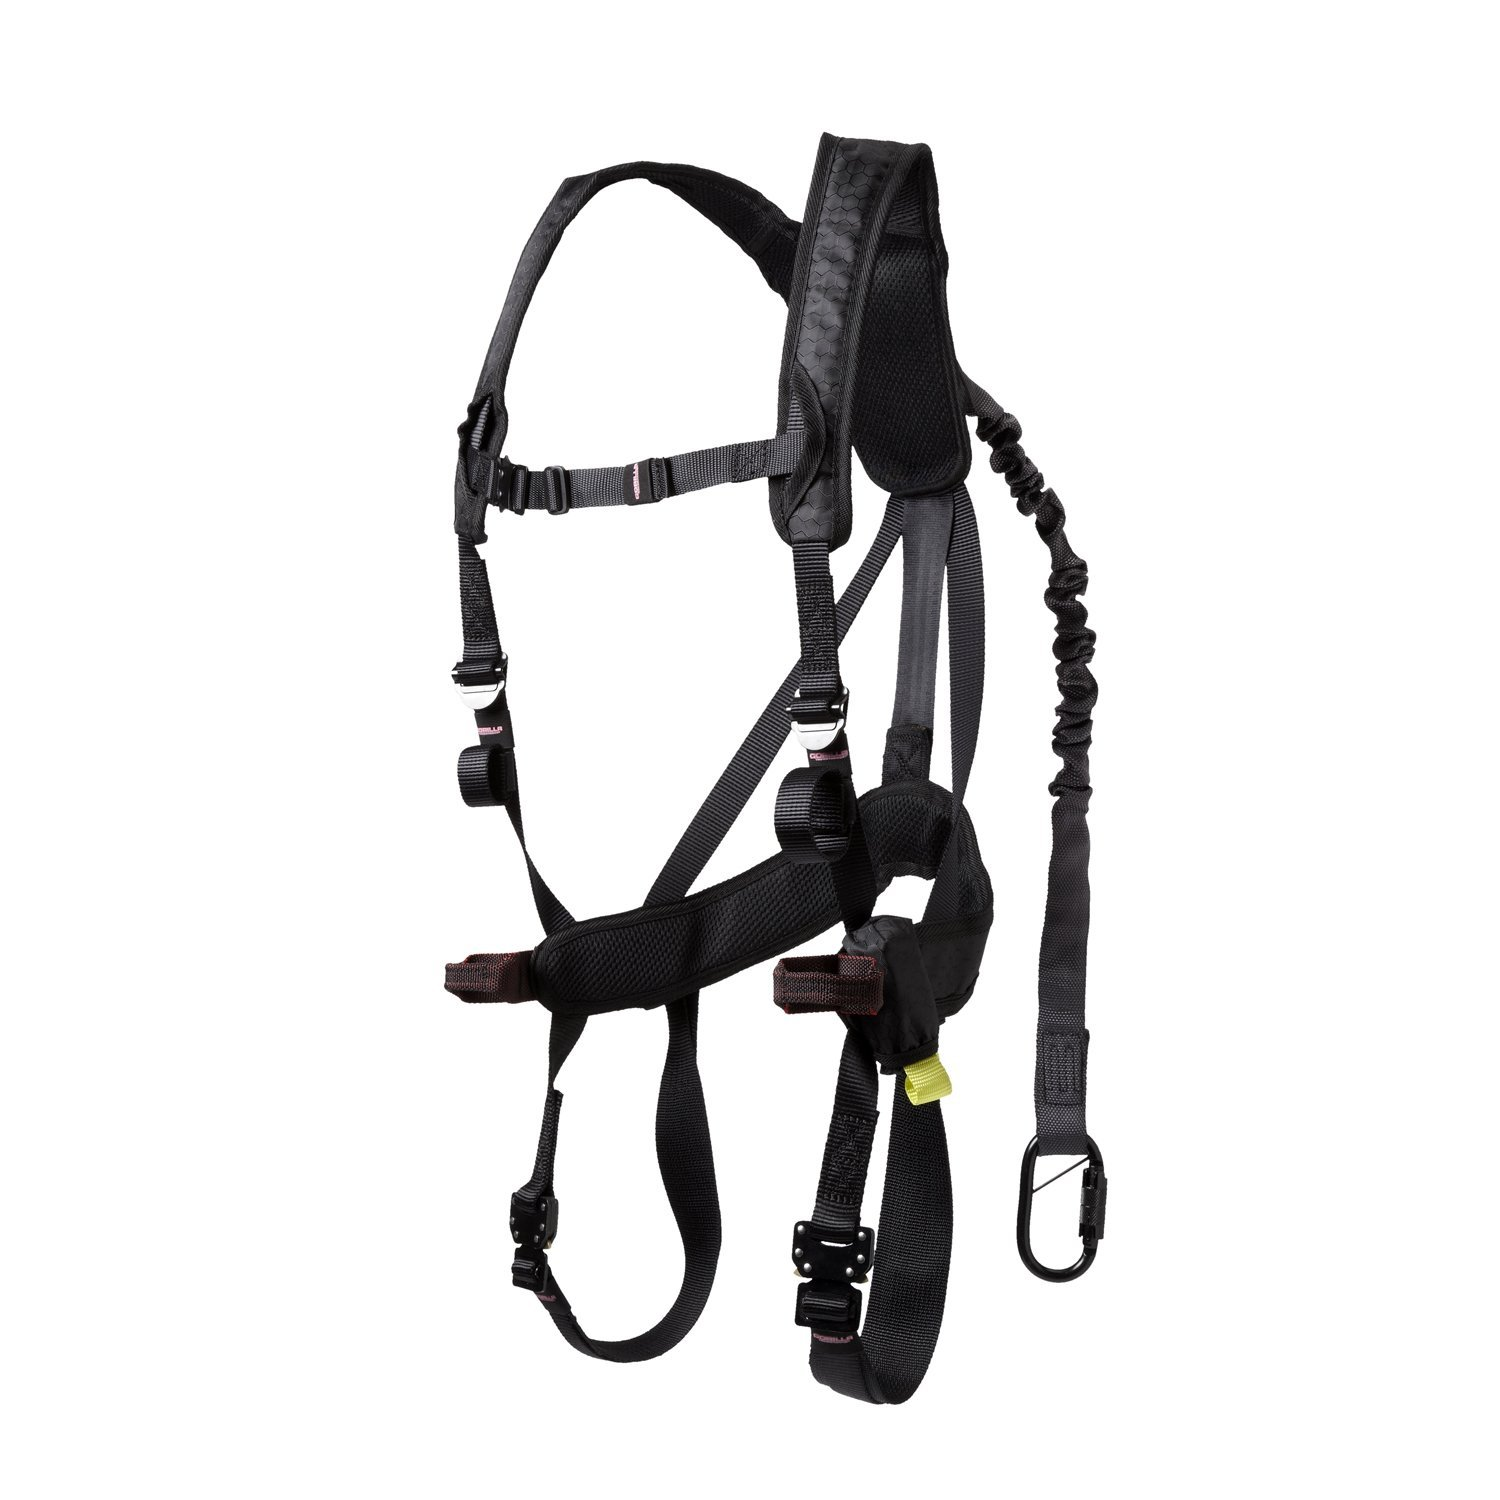 Cheap Big Game Treestands Safety Harness, find Big Game Treestands